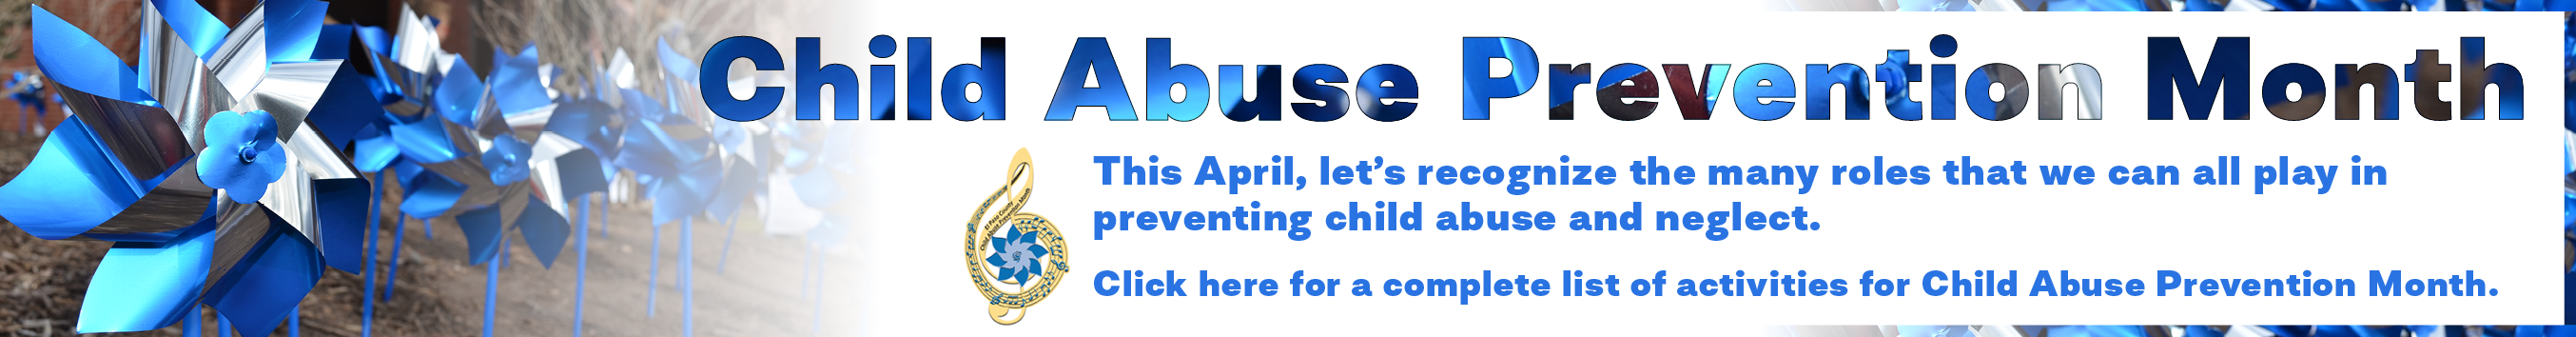 Child Abuse Prevention Banner click for schedule